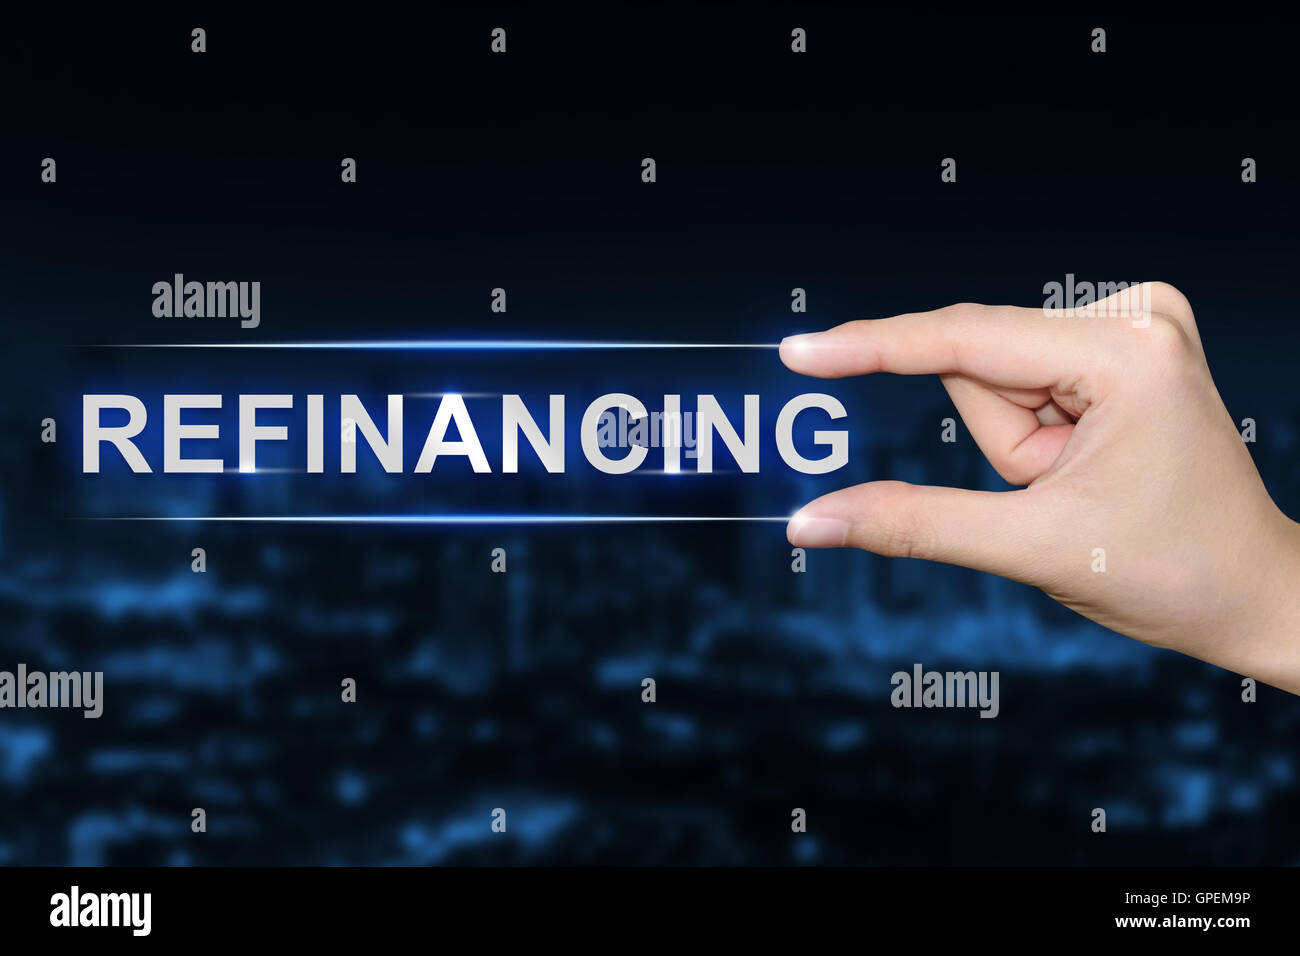 hand pushing refinancing button on blurred blue background - Stock Image